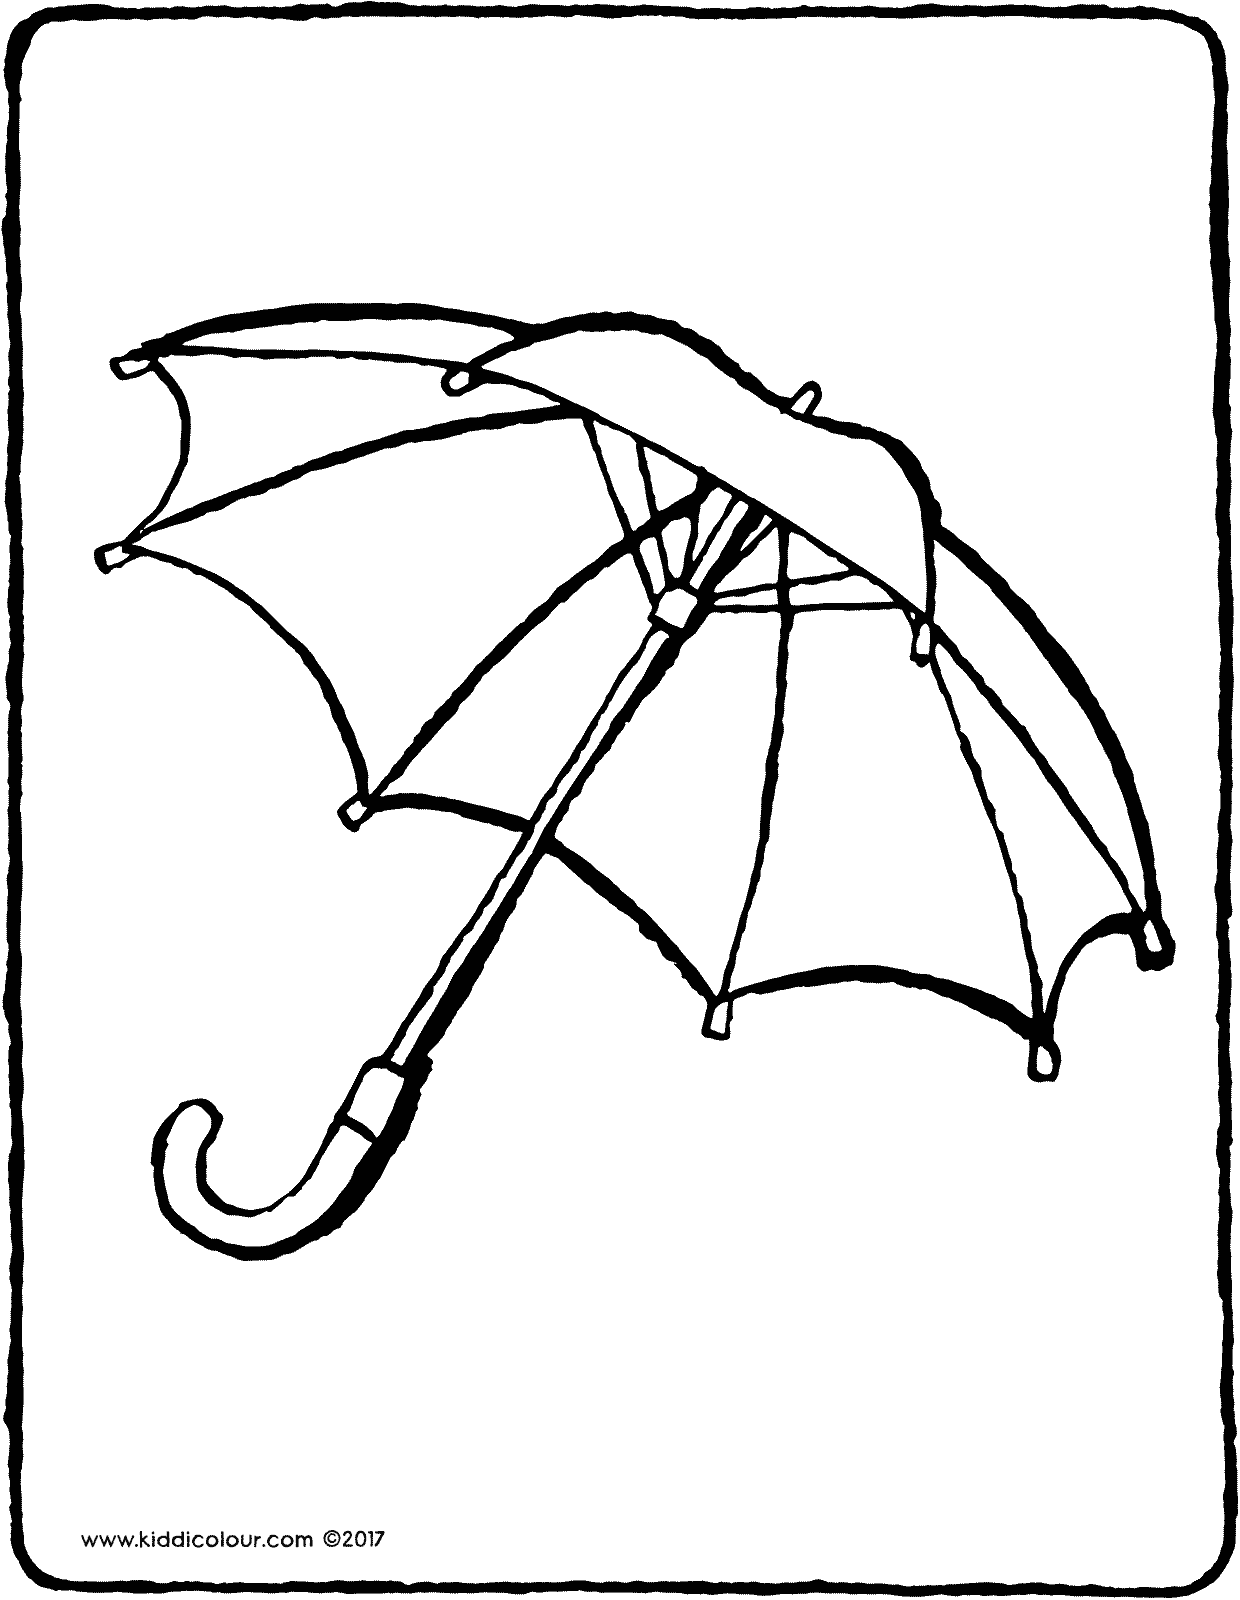 colouring picture of umbrella umbrella coloring page printable spring coloring ebook umbrella of picture colouring